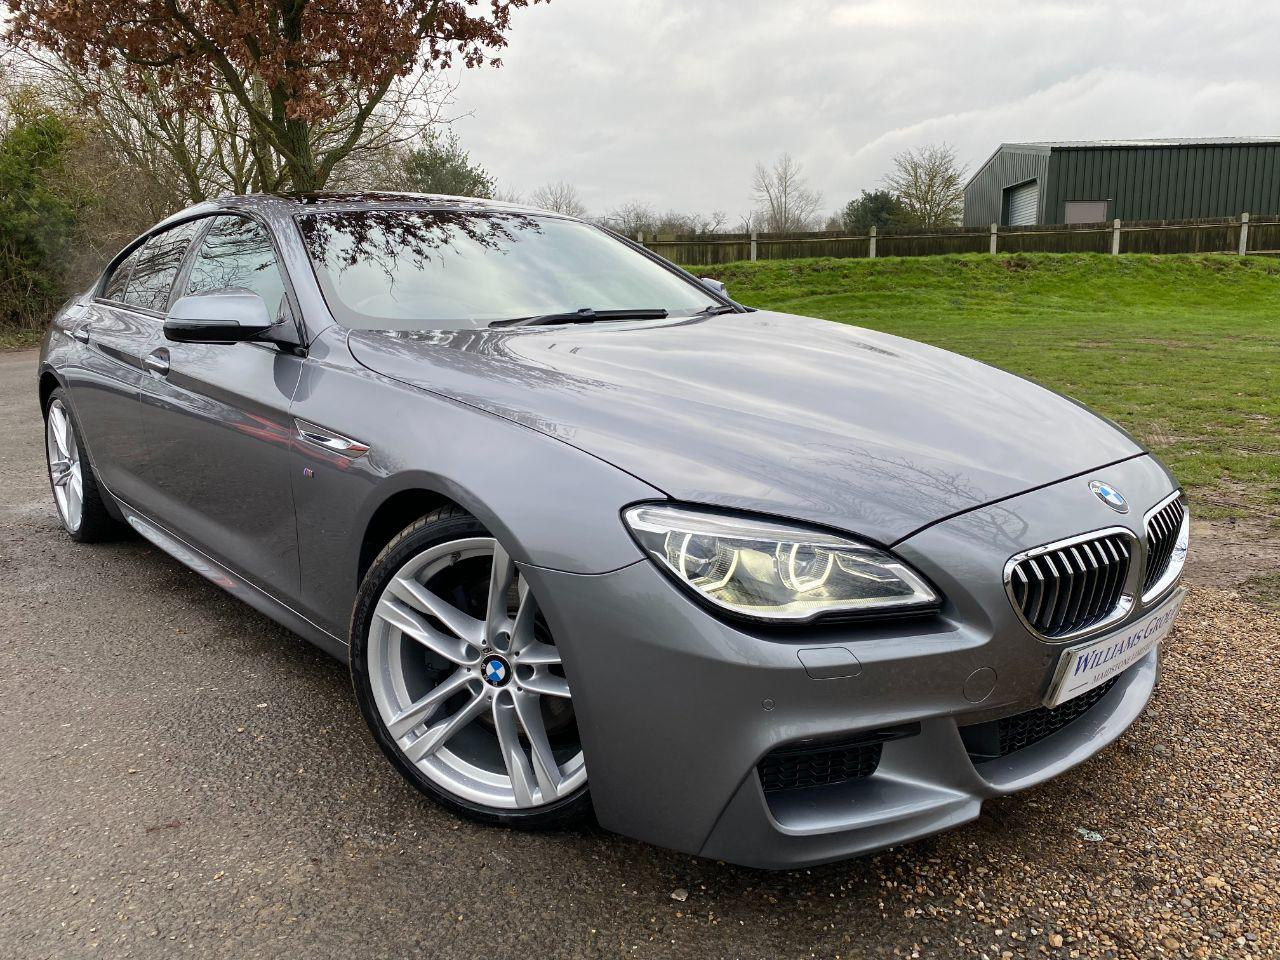 BMW 6 Series 3.0 640d M Sport 4dr Auto (20in Alloys! Sunroof! HUD! +++) Coupe Diesel Space Grey Metallic